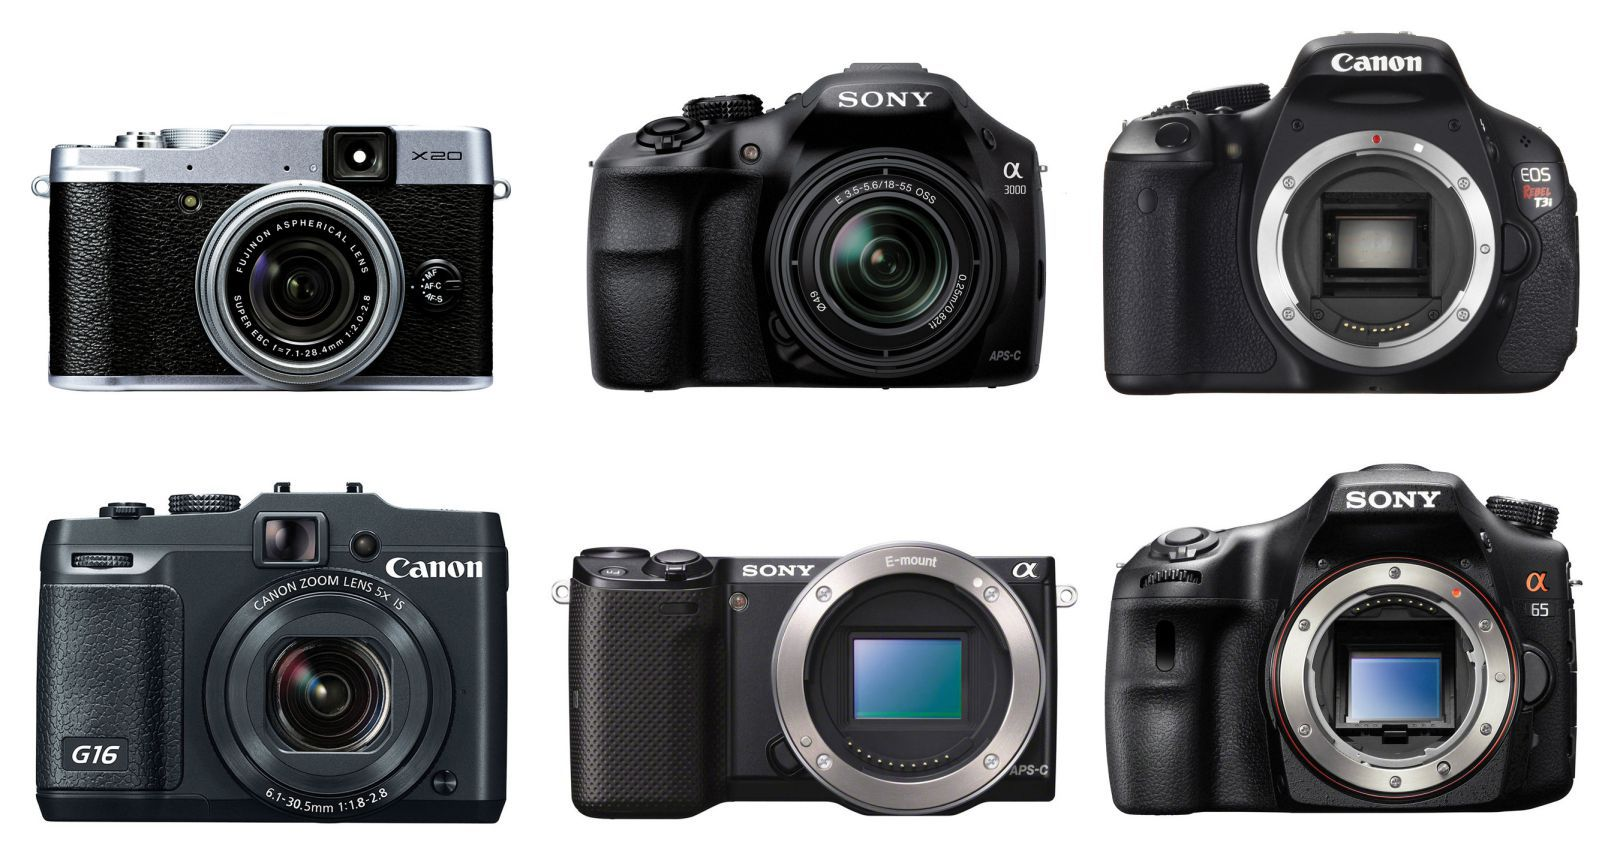 5-Best-Digital-Cameras-of-